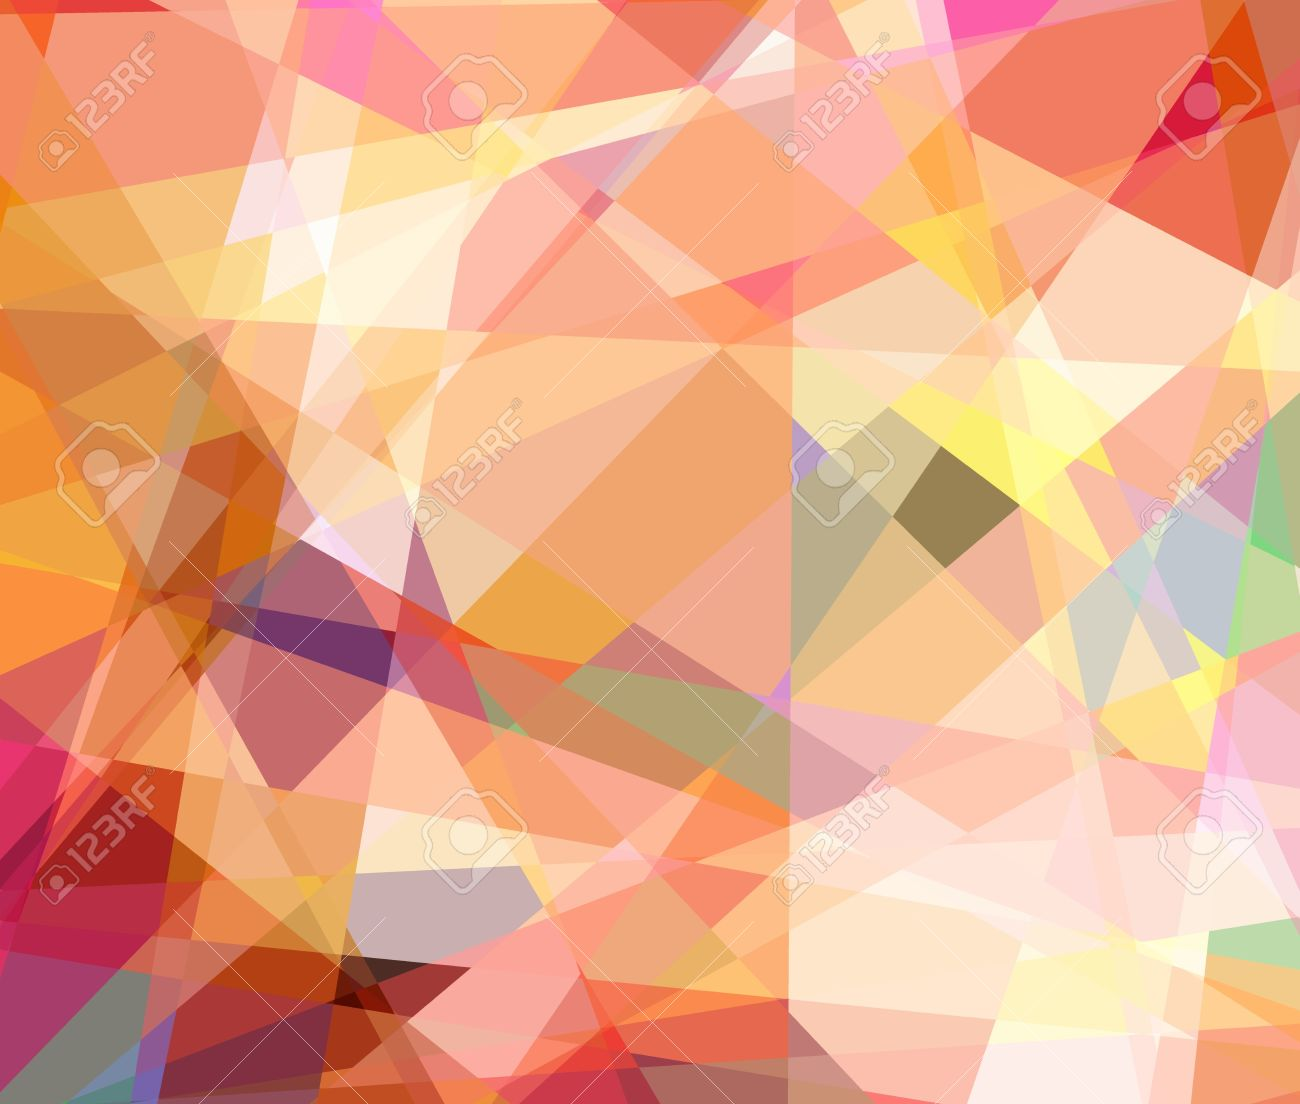 Abstract Graphics Background Graphic Design Background